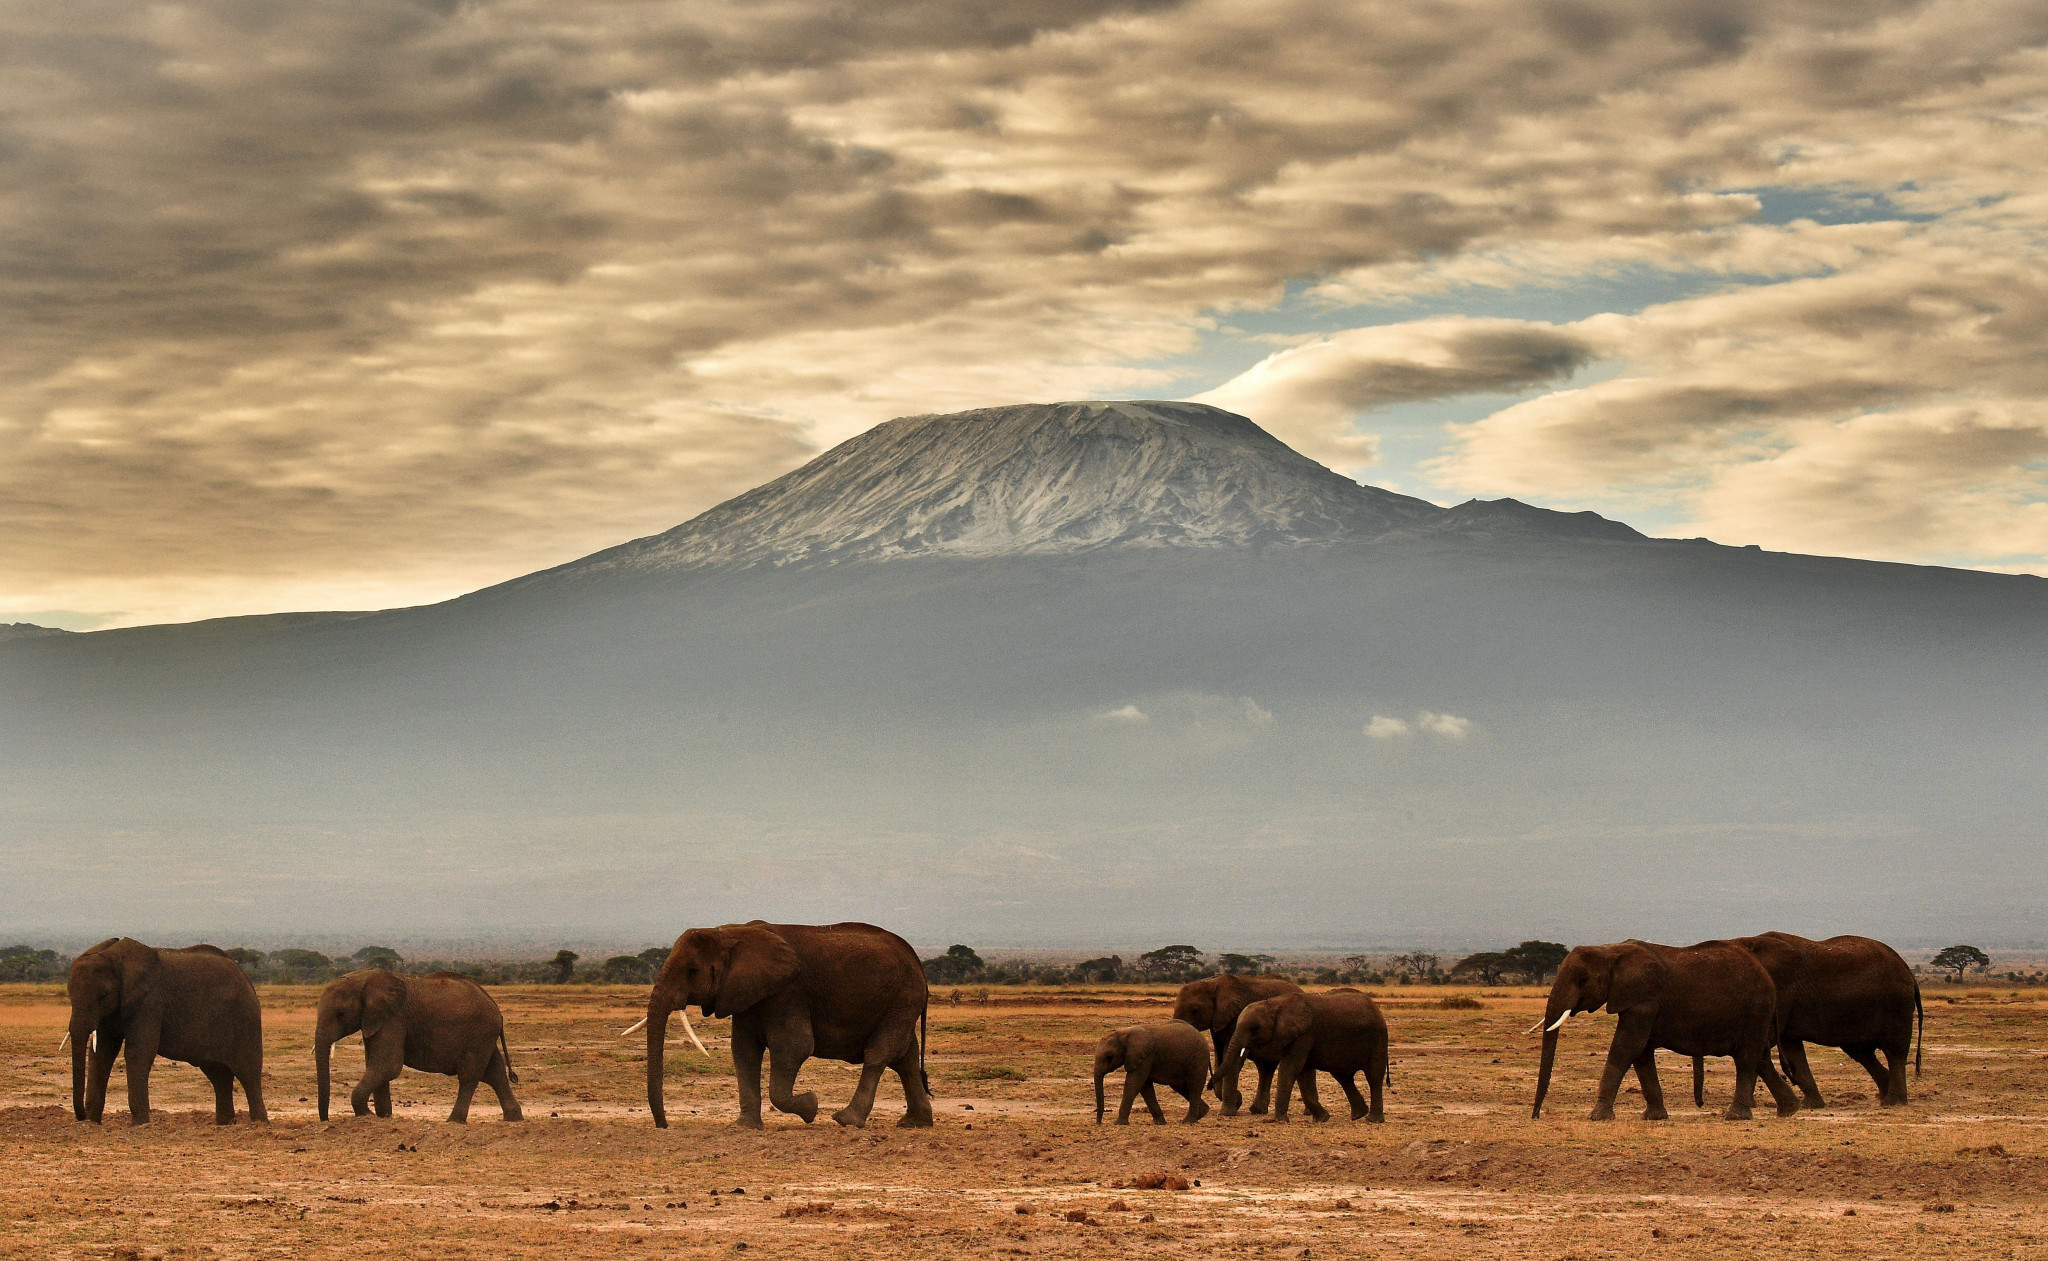 Mount Kilimanjaro is the highest mountain in Africa ©Getty Images